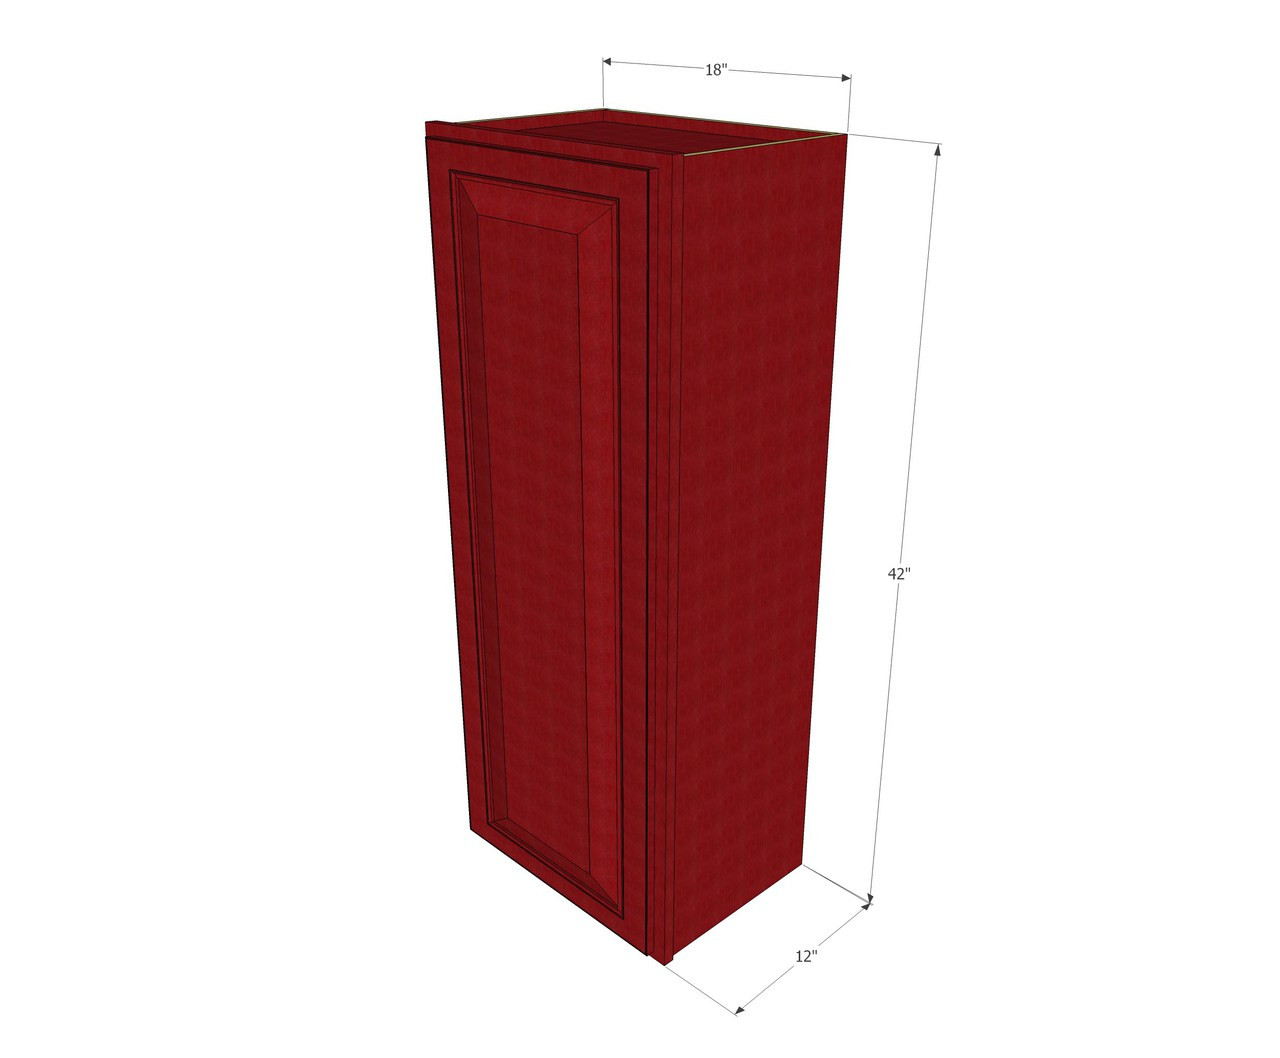 Wide X 42 Inch High Image 1